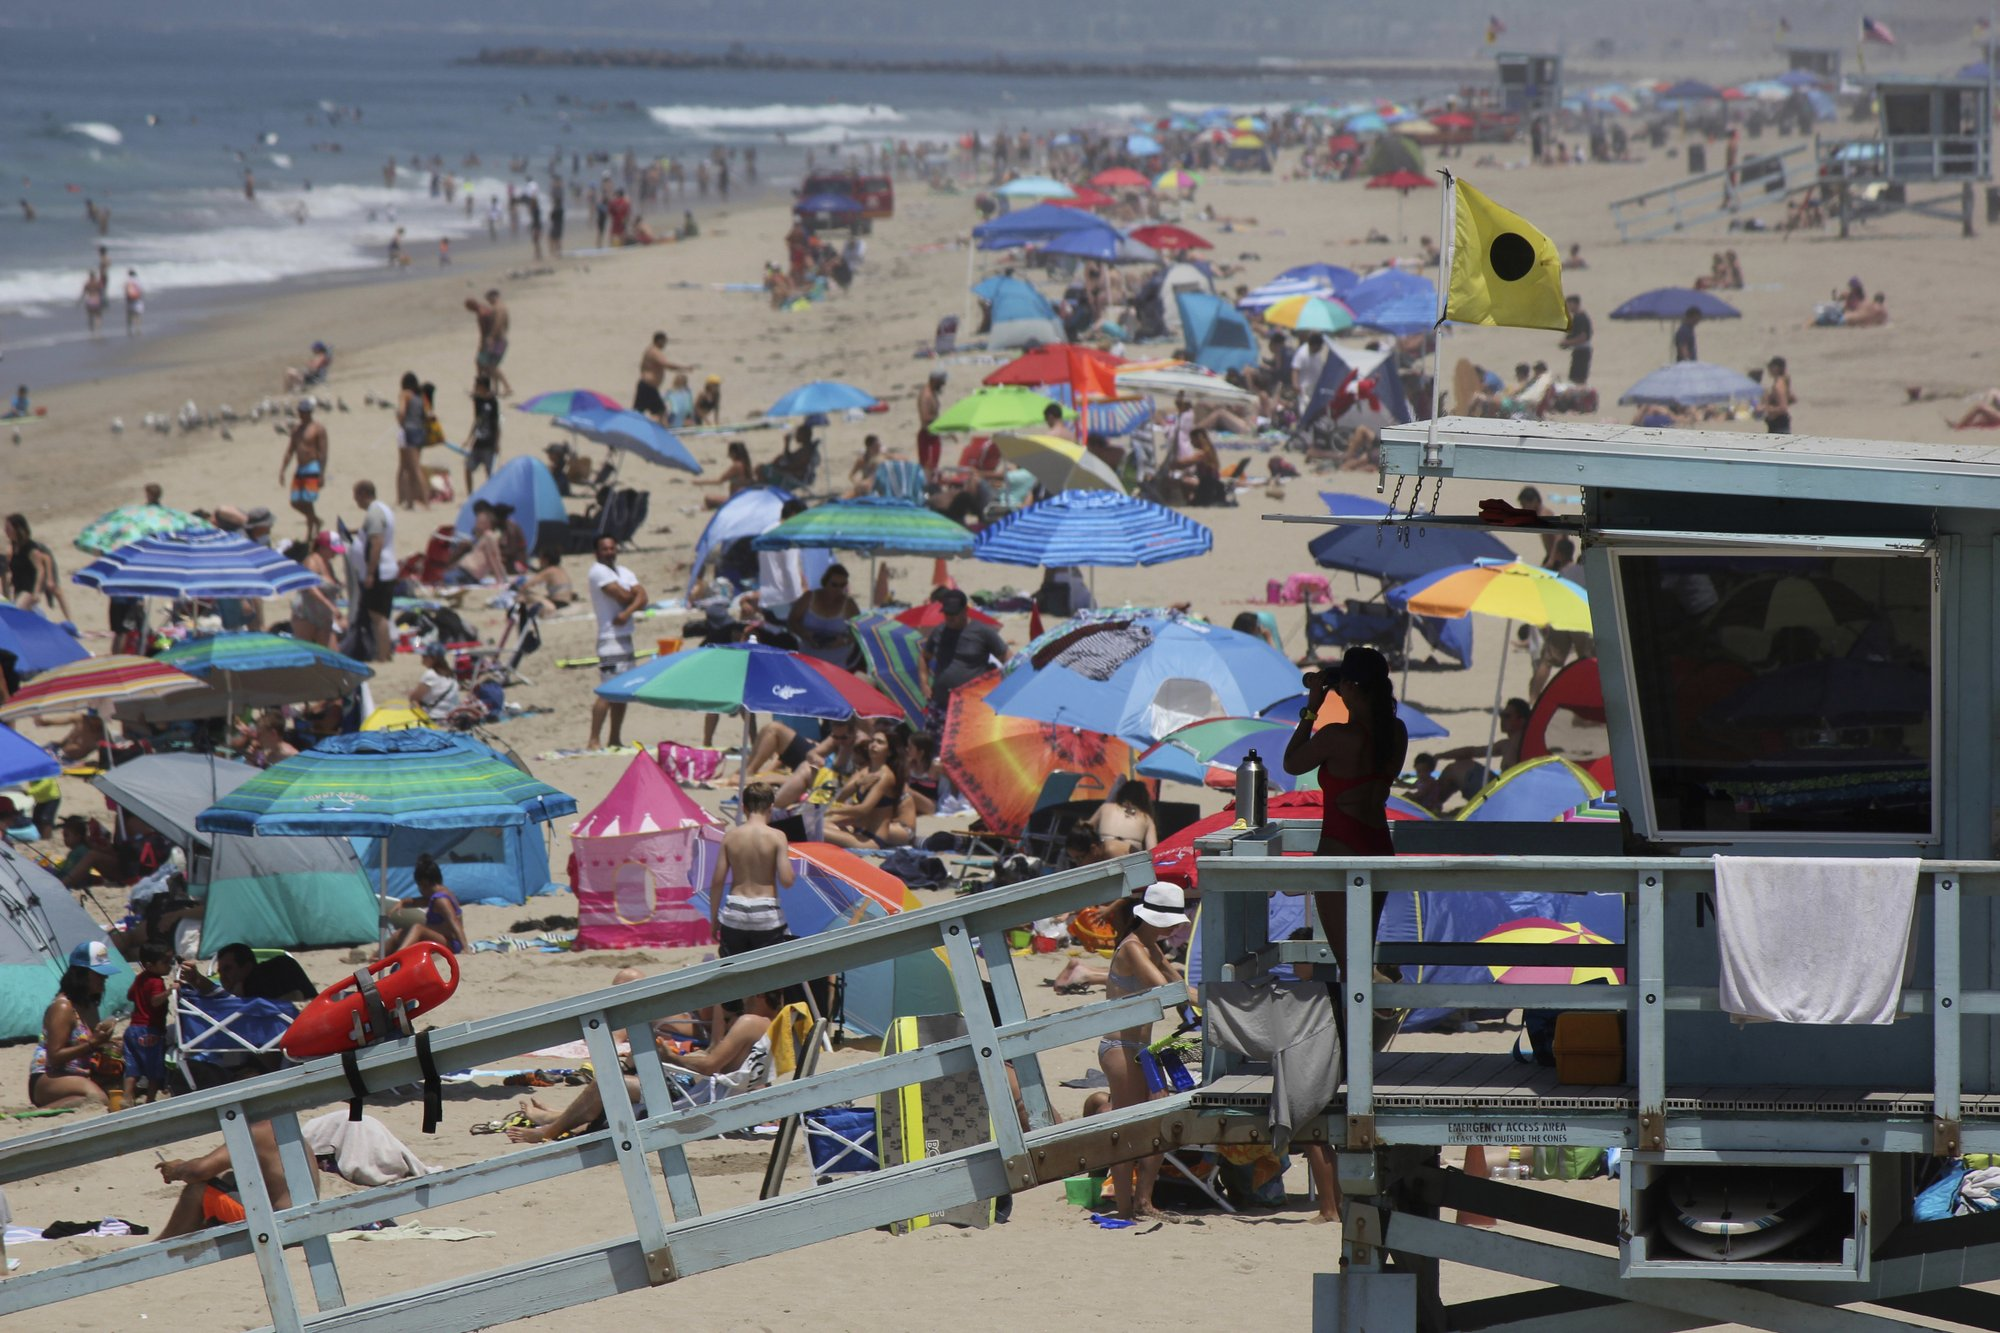 California inches toward 40 mln people, but growth rate slows